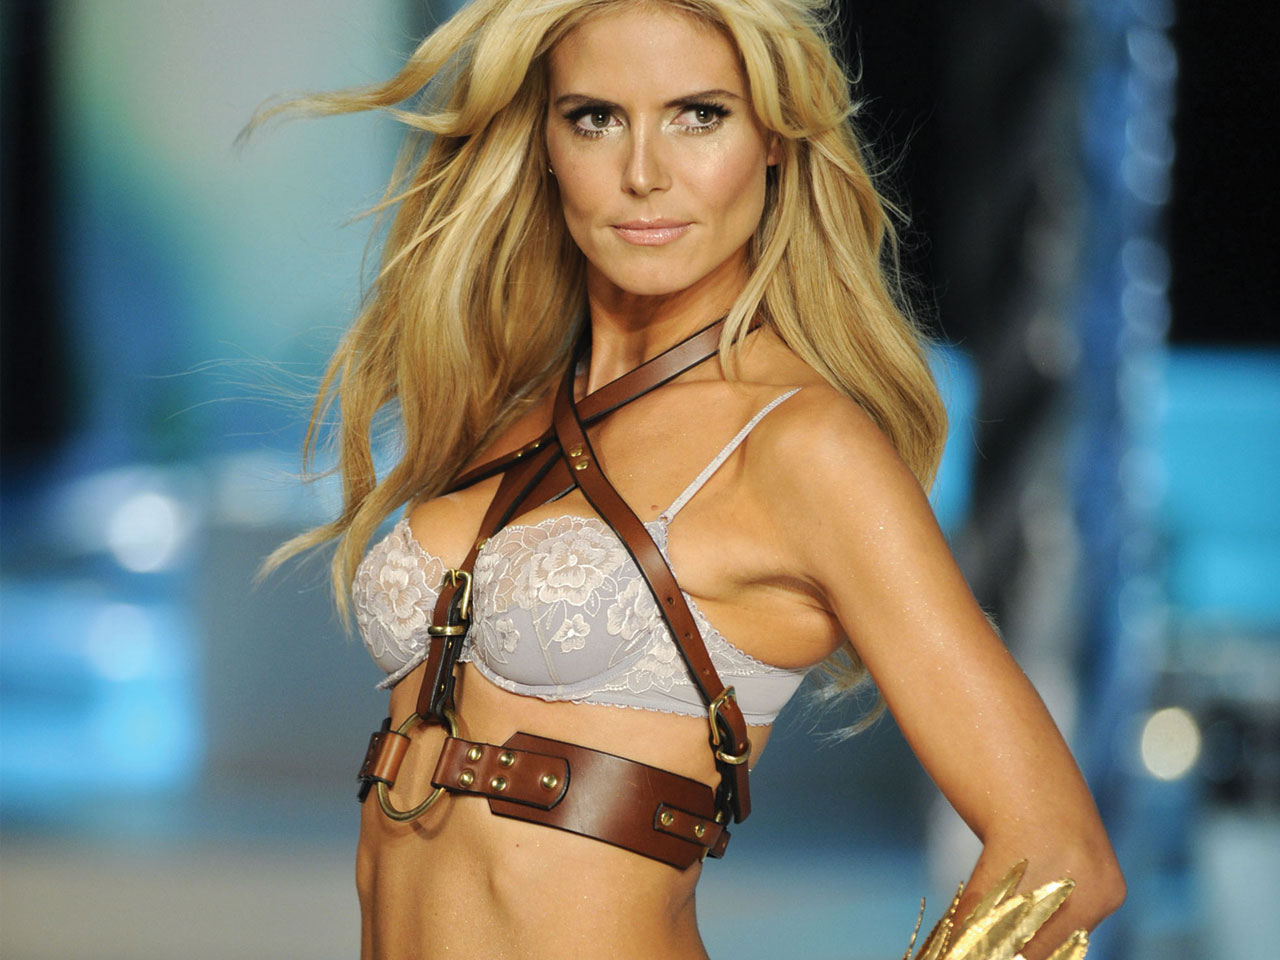 Victoria S Secret Angels The Top 10 Hottest Models Ever